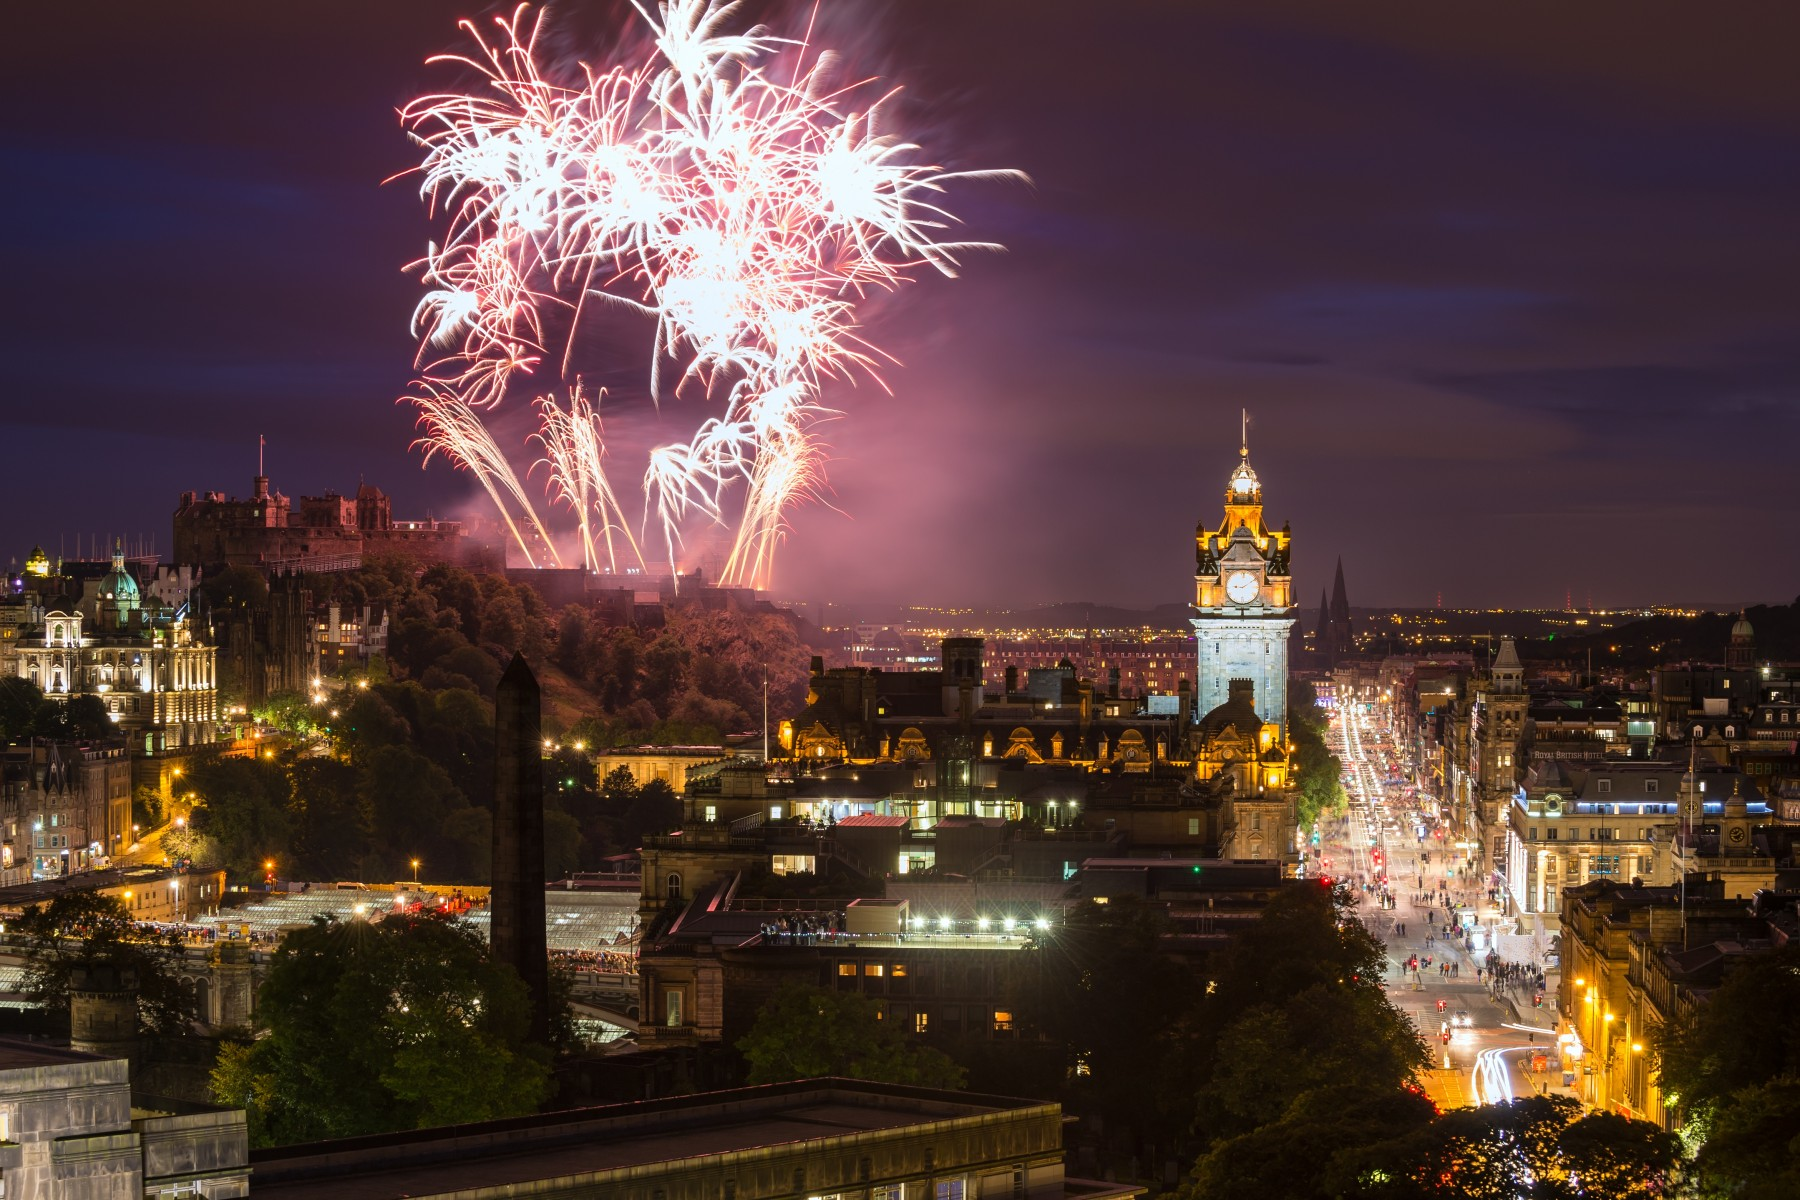 New Years Eve in Edinburgh, Scotland